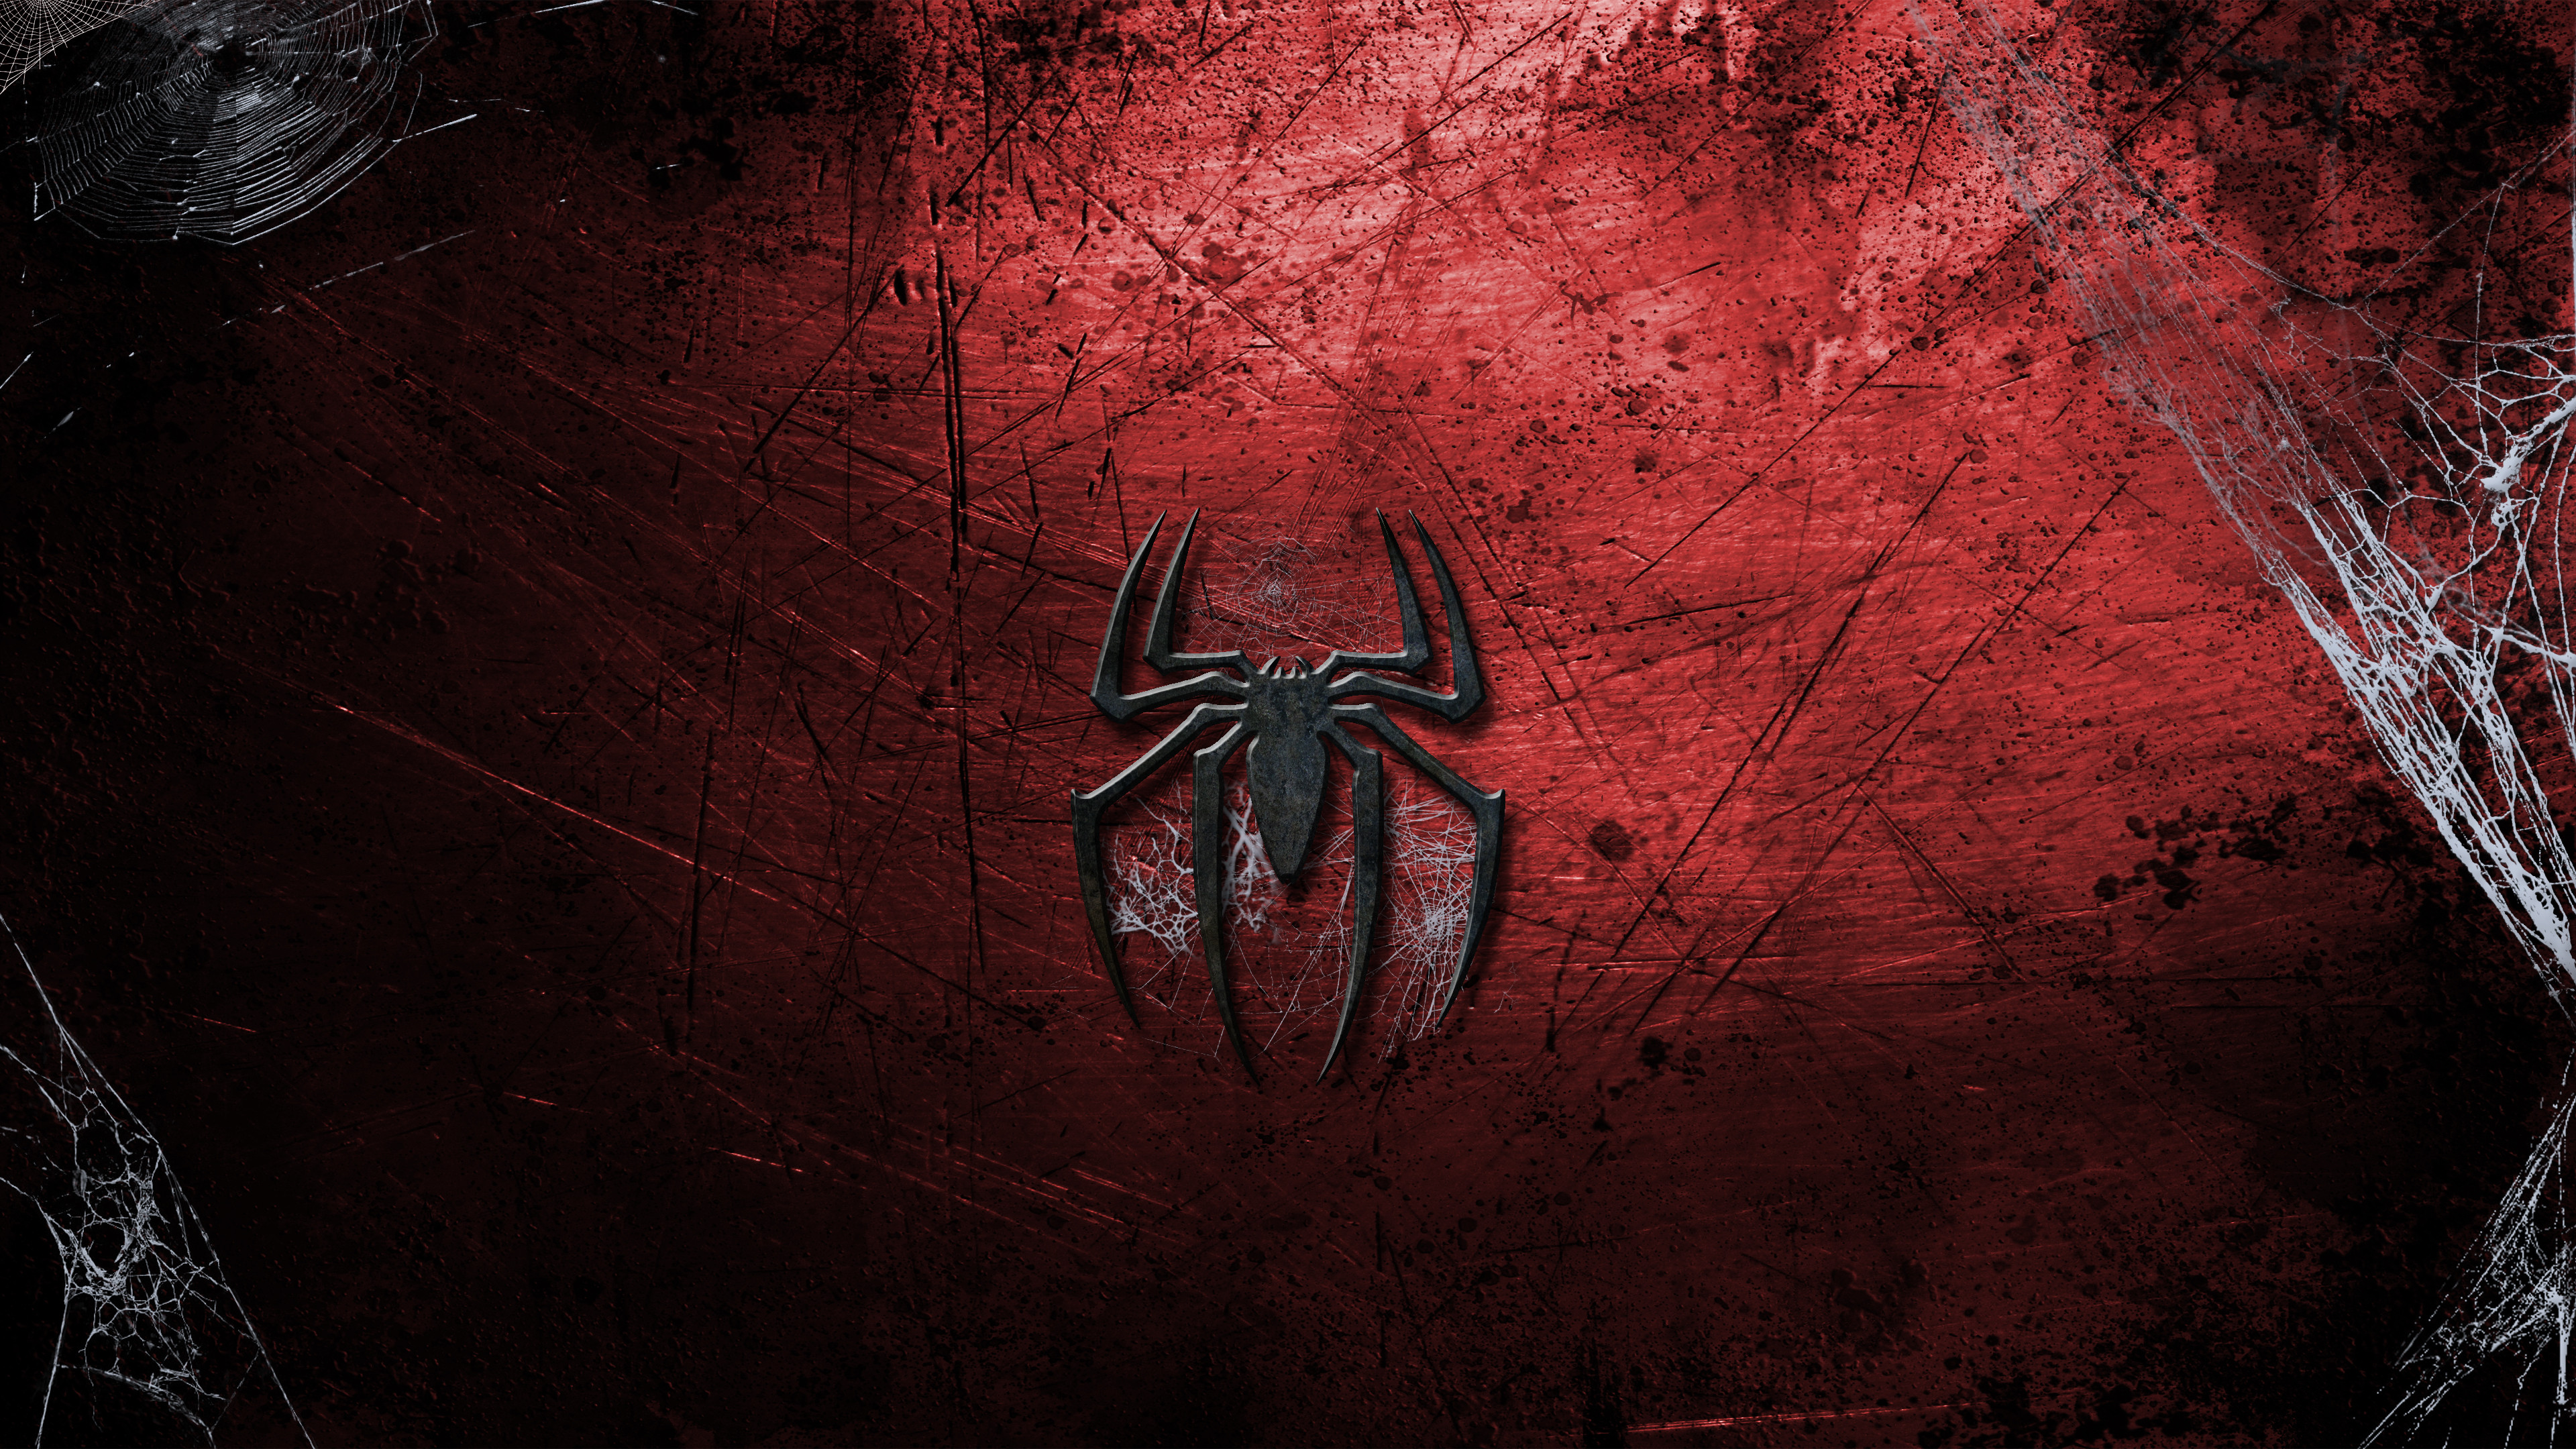 download spiderman wallpaper for iphone & ipad